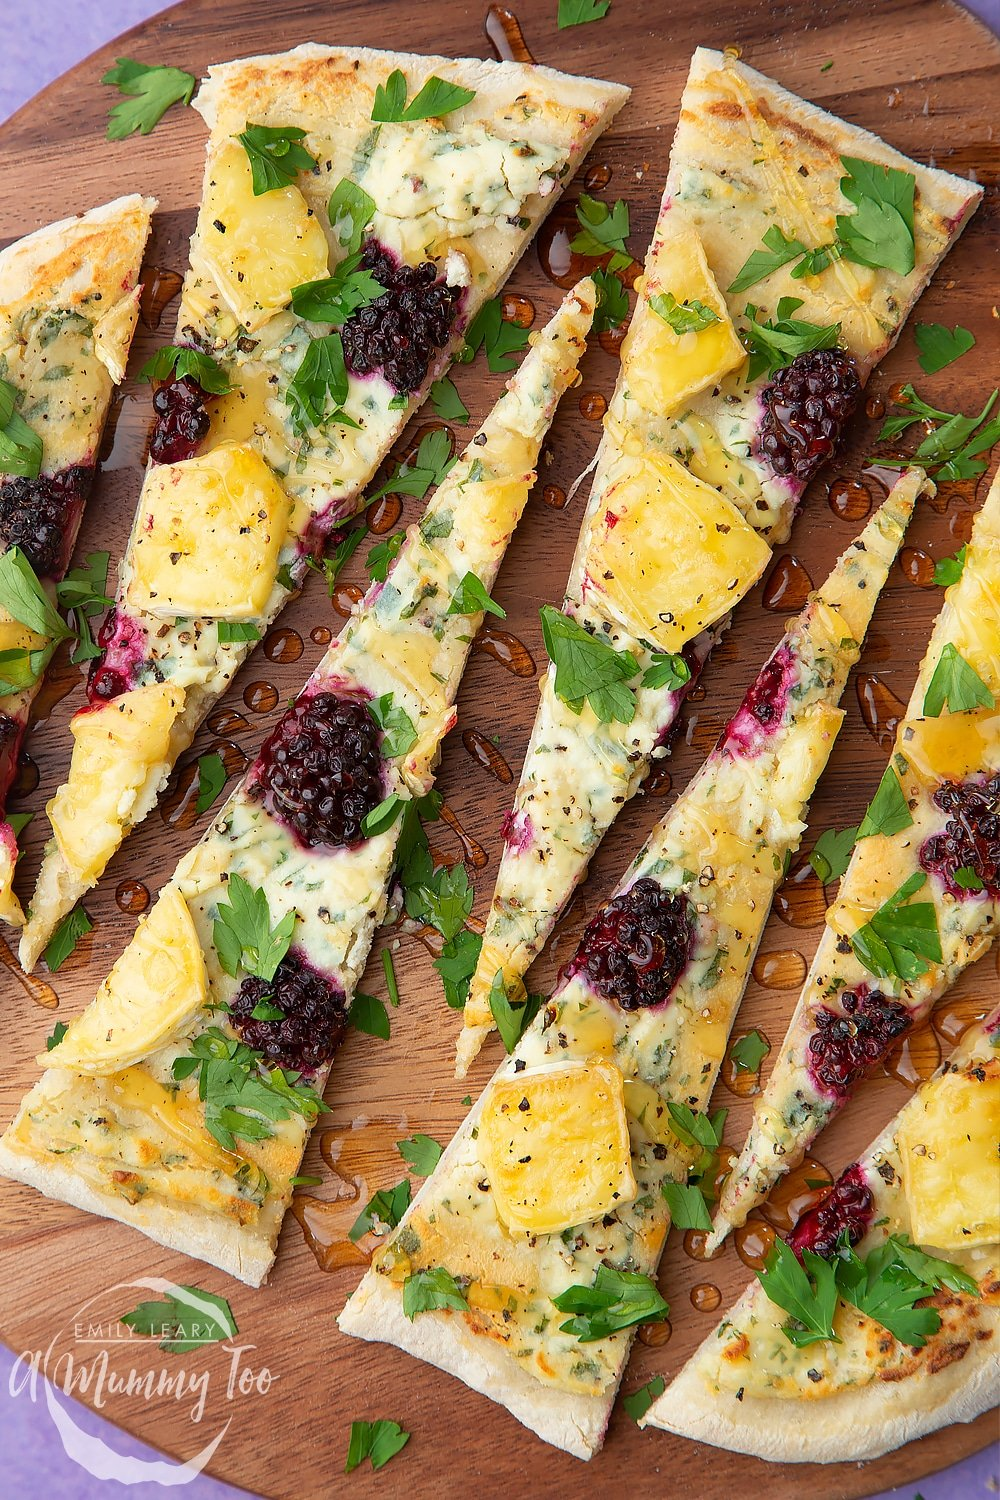 Brie and blackberry pizza sliced on a dark wooden board. The slices are long and thin.